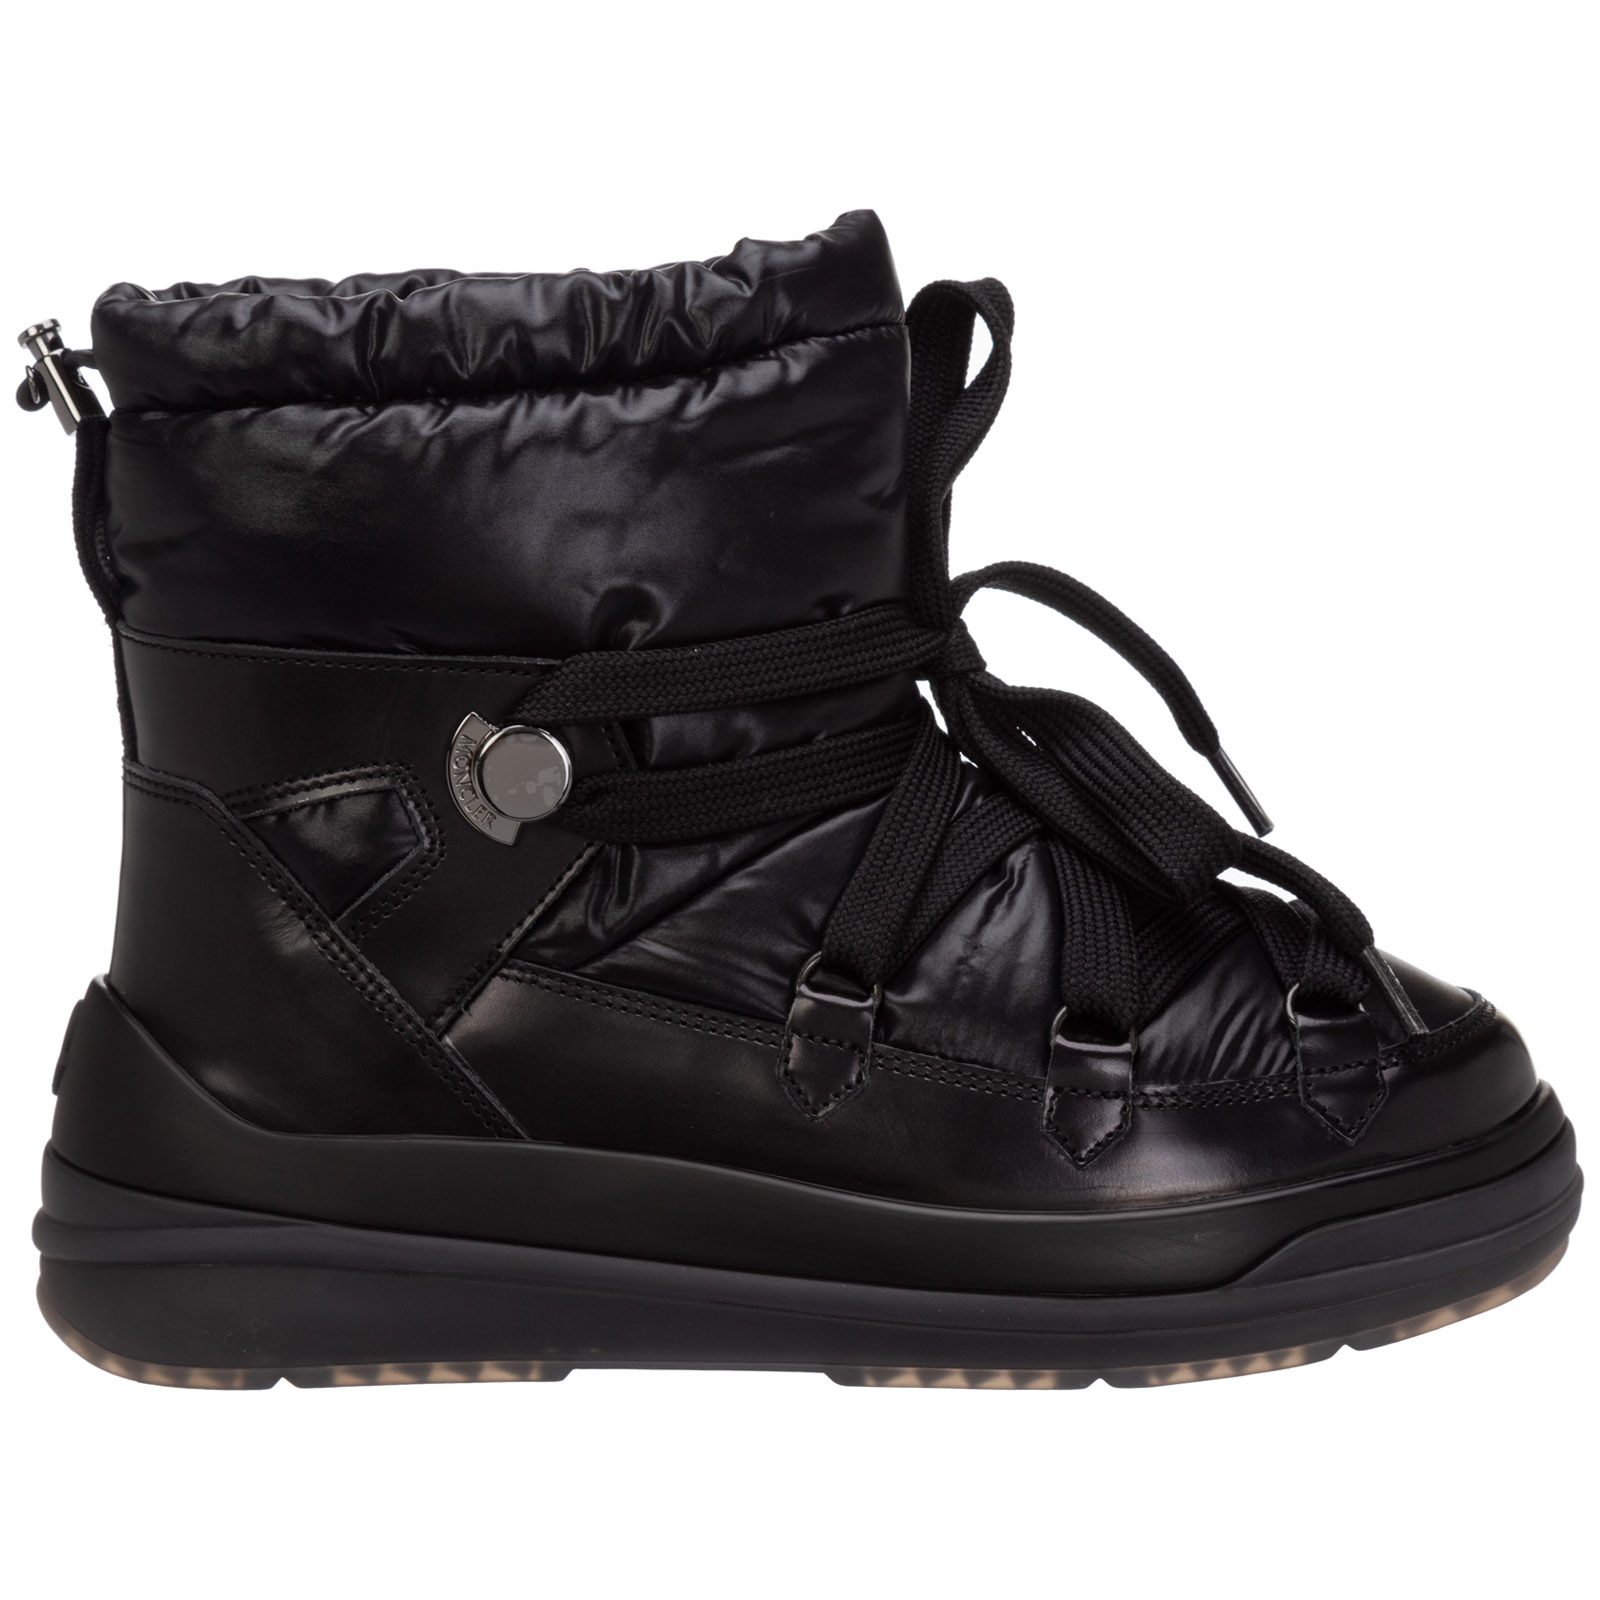 Moncler WOMEN'S SNOW BOOTS WINTER SKI  INSOLUX